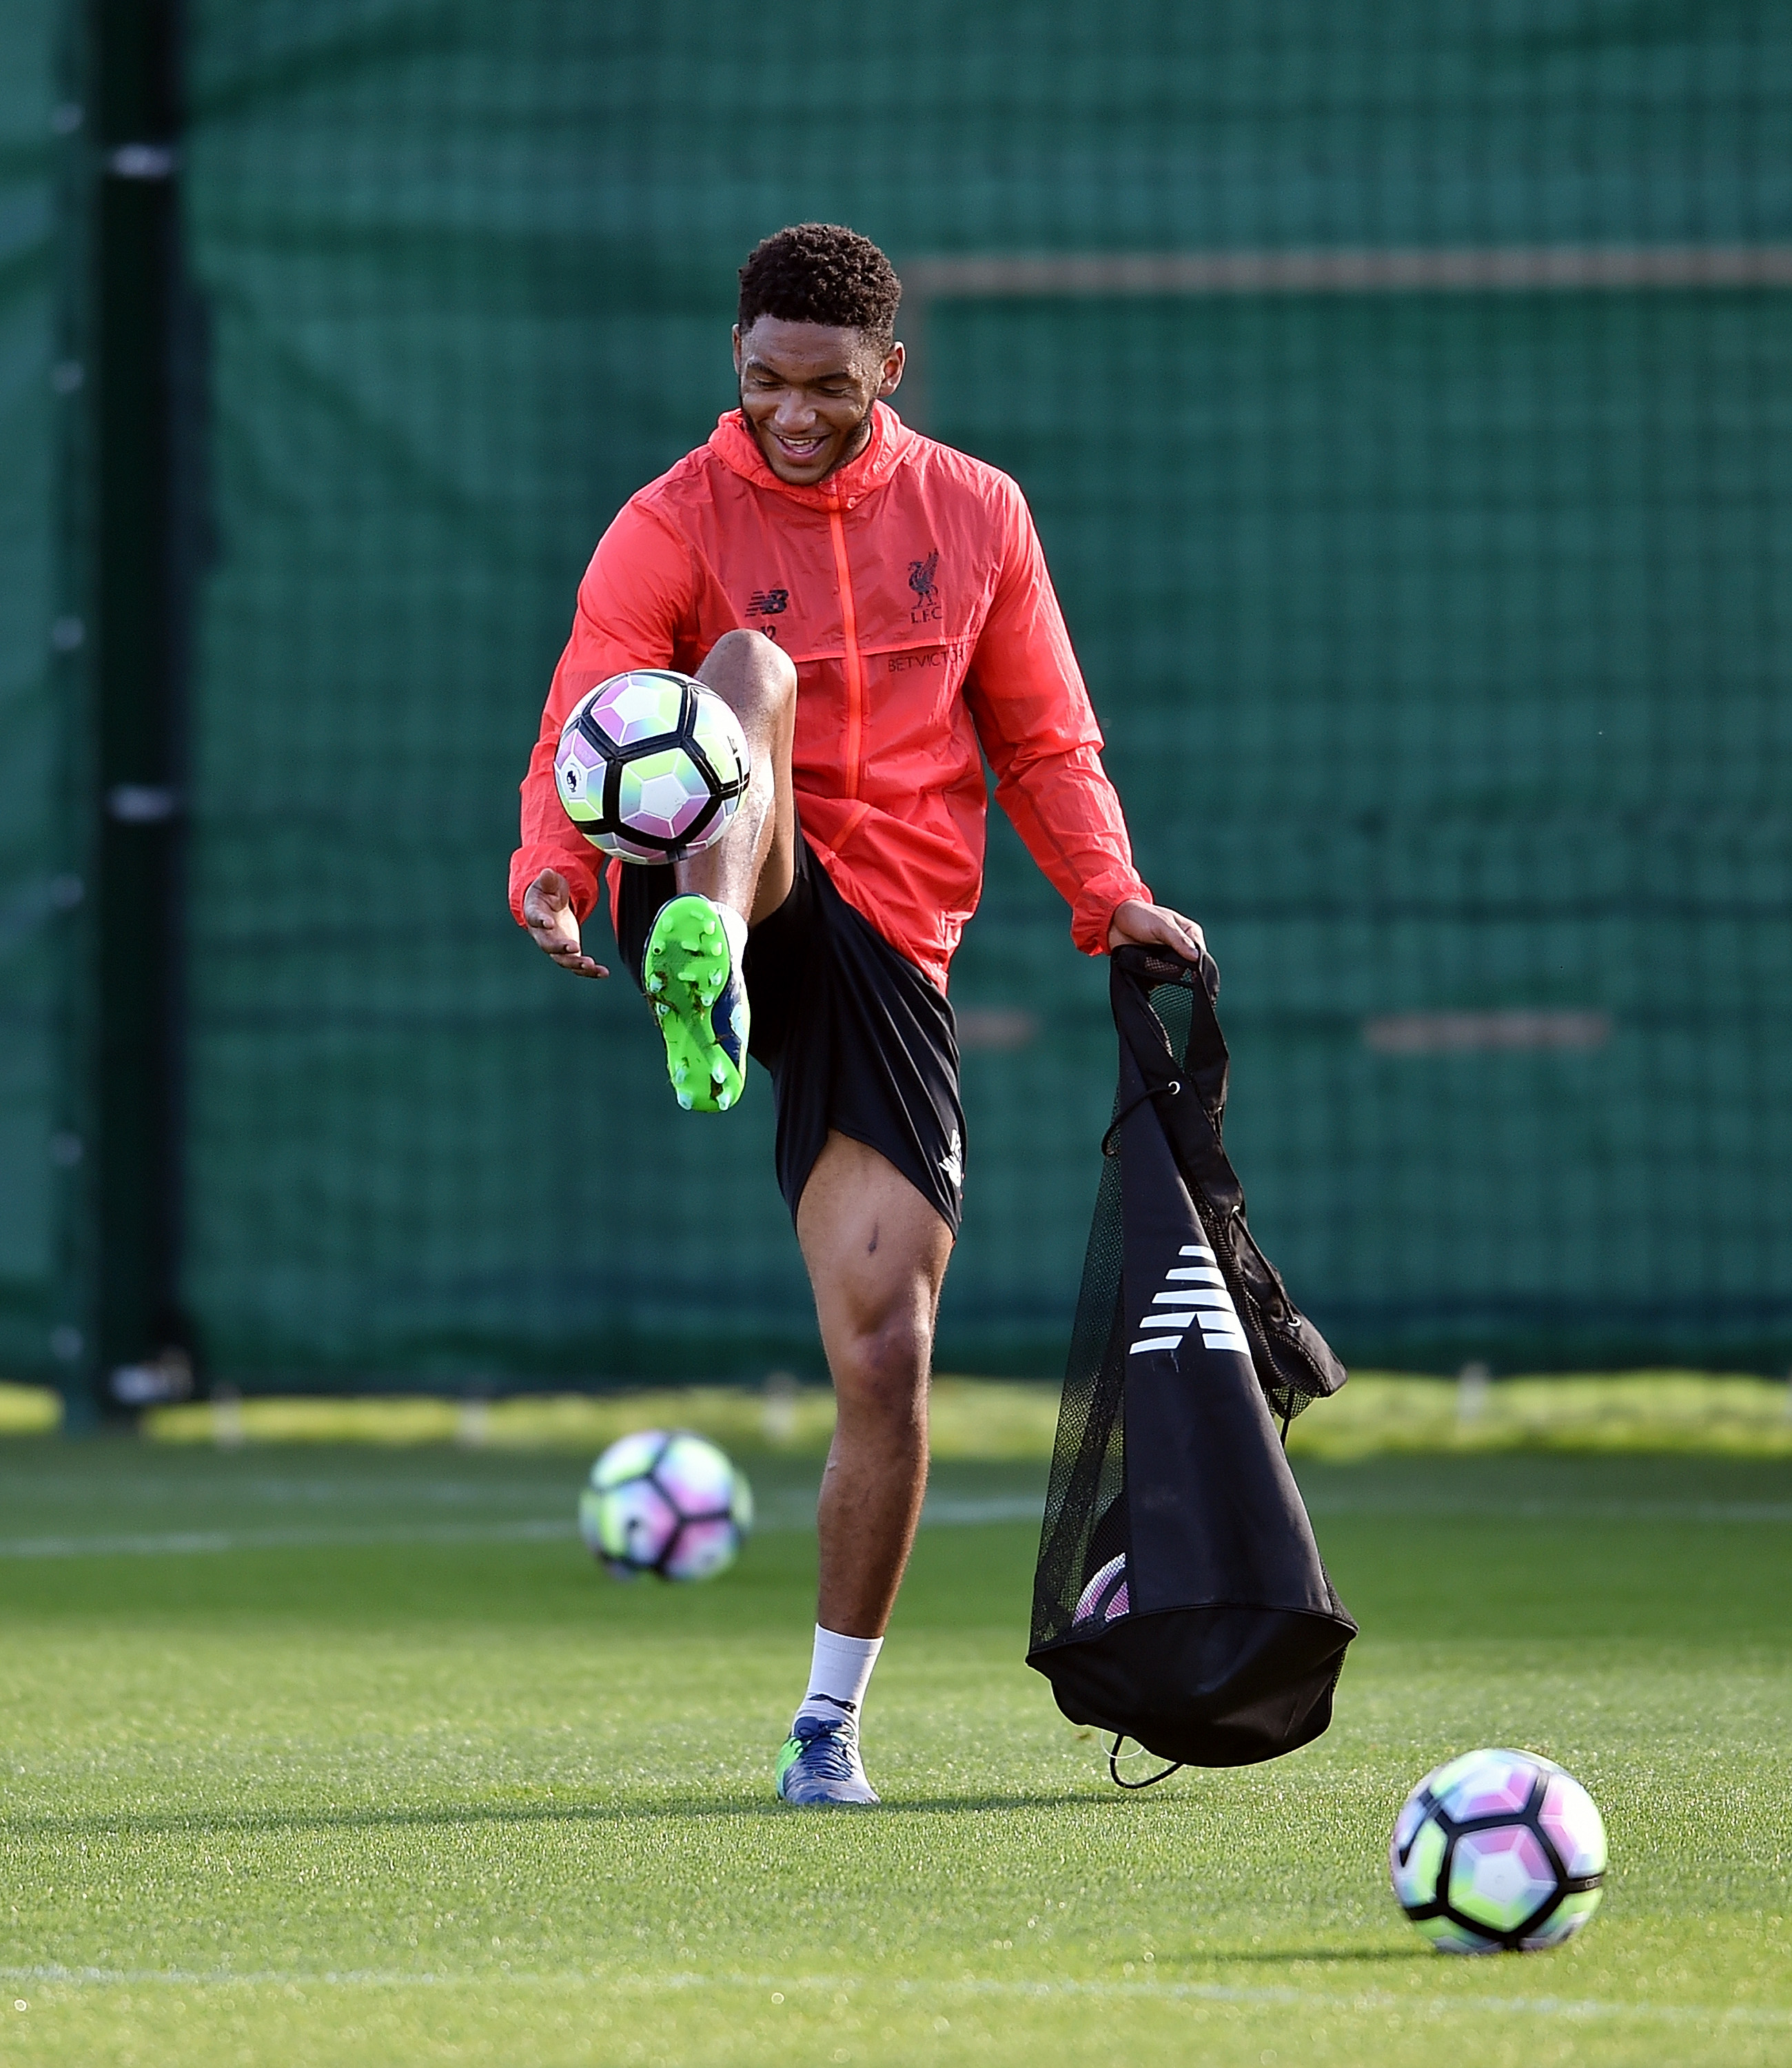 Injury news: Liverpool defender Joe Gomez steps up recovery while Georginio Wijnaldum returns to training